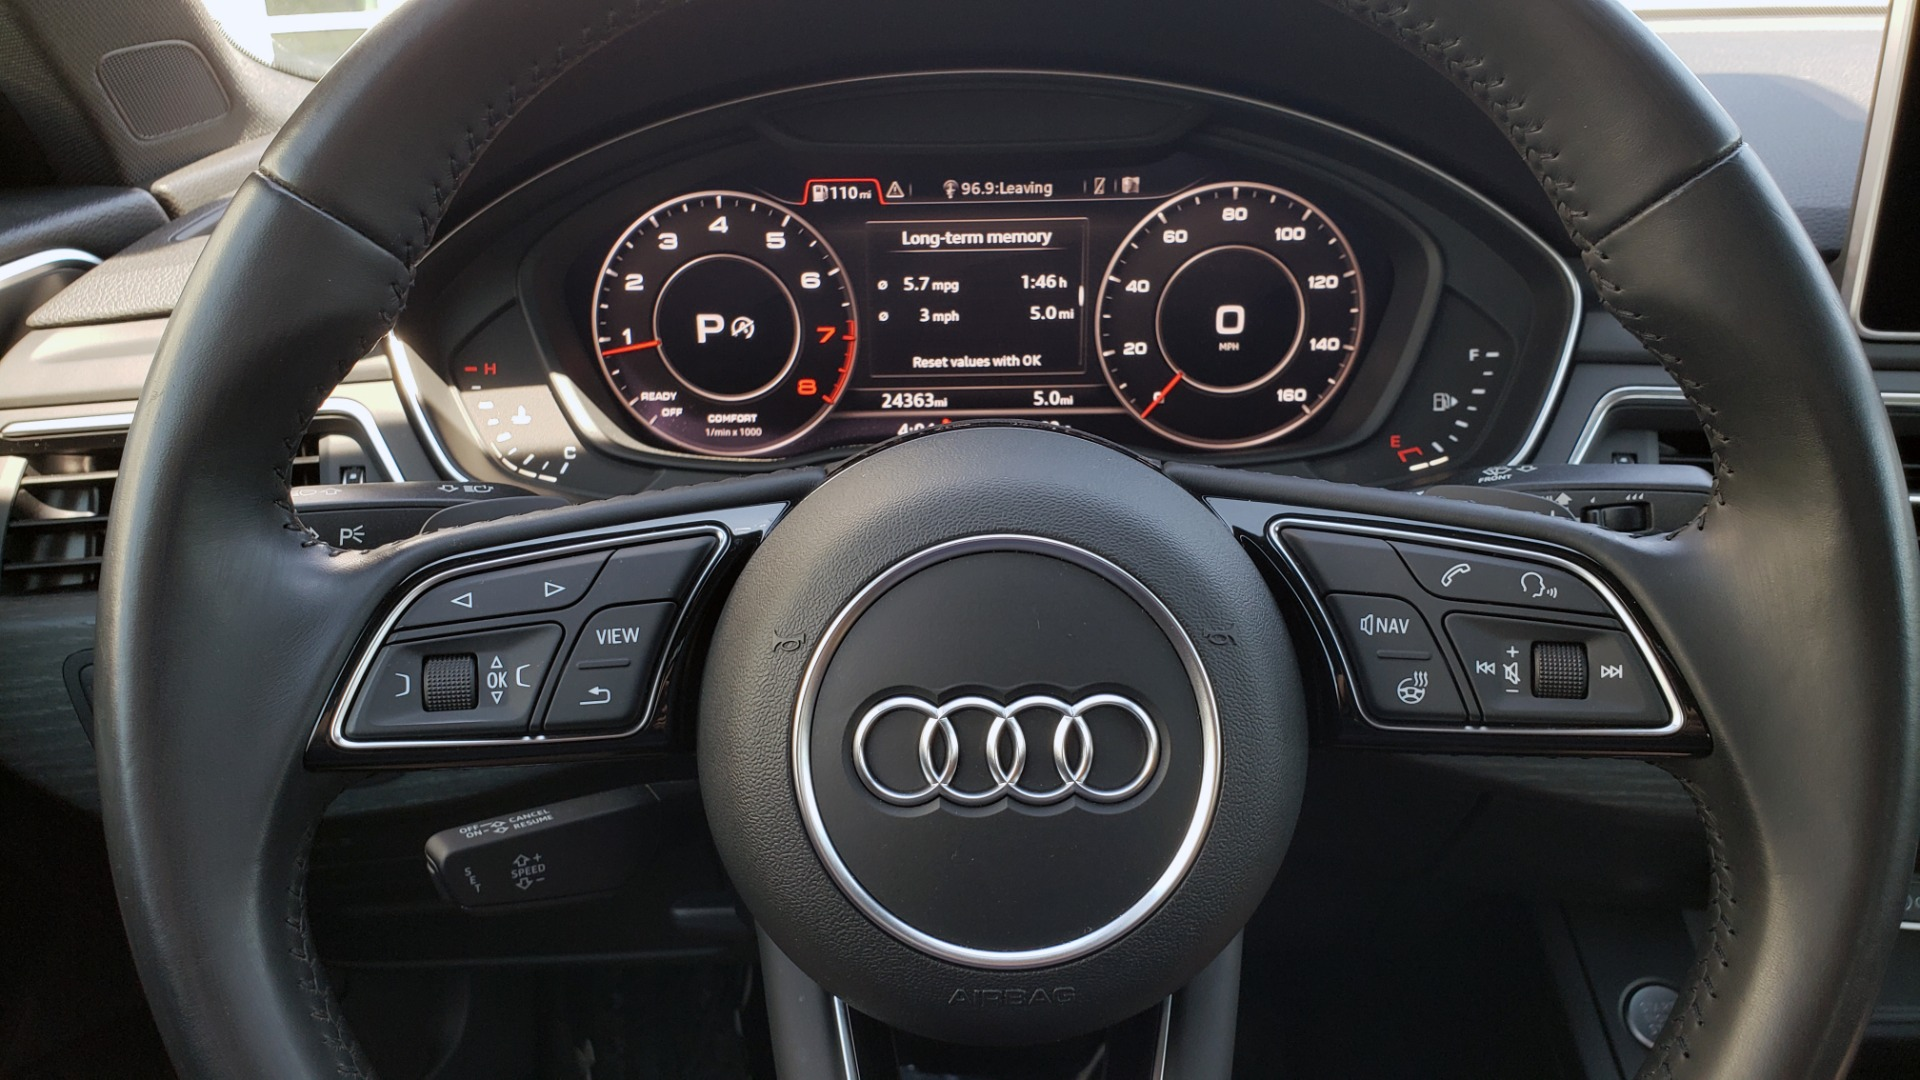 Used 2018 Audi A4 PREMIUM PLUS 2.0T / NAV / SUNROOF / B&O SND / CLD WTHR / REARVIEW for sale $30,695 at Formula Imports in Charlotte NC 28227 38